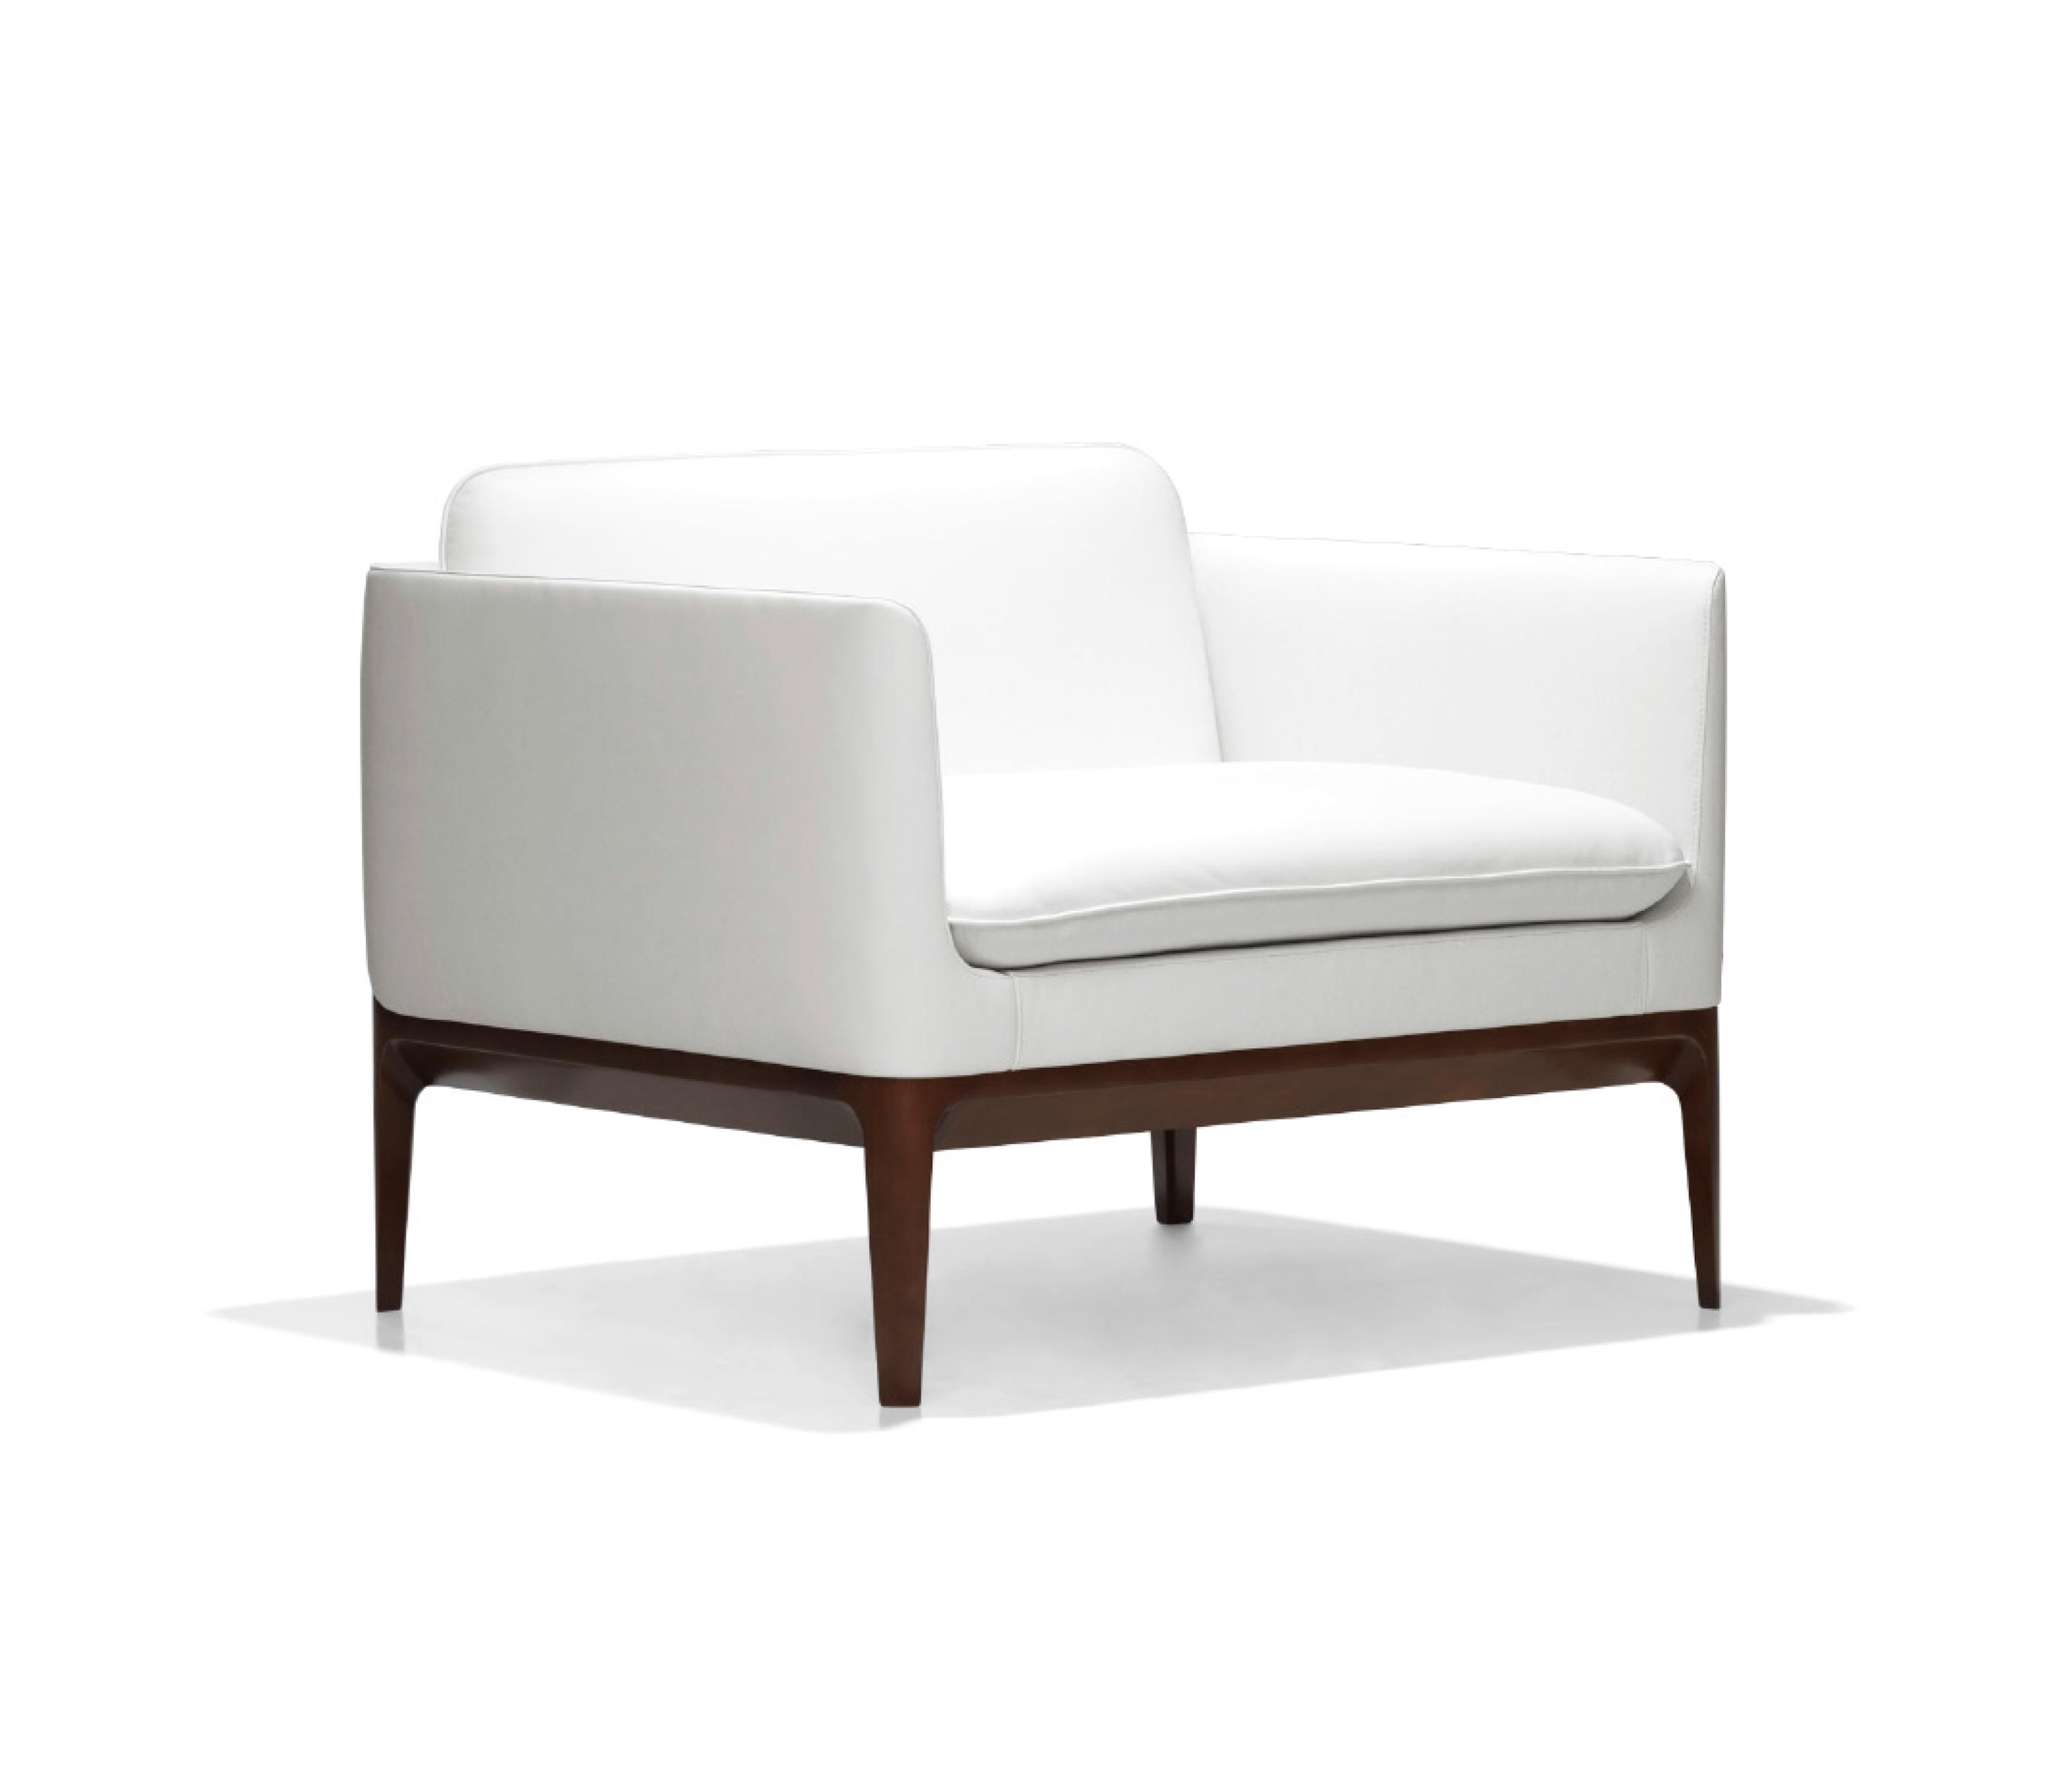 Atlantic Lounge Chairs From Bernhardt Design Architonic # Fetiche Muebles